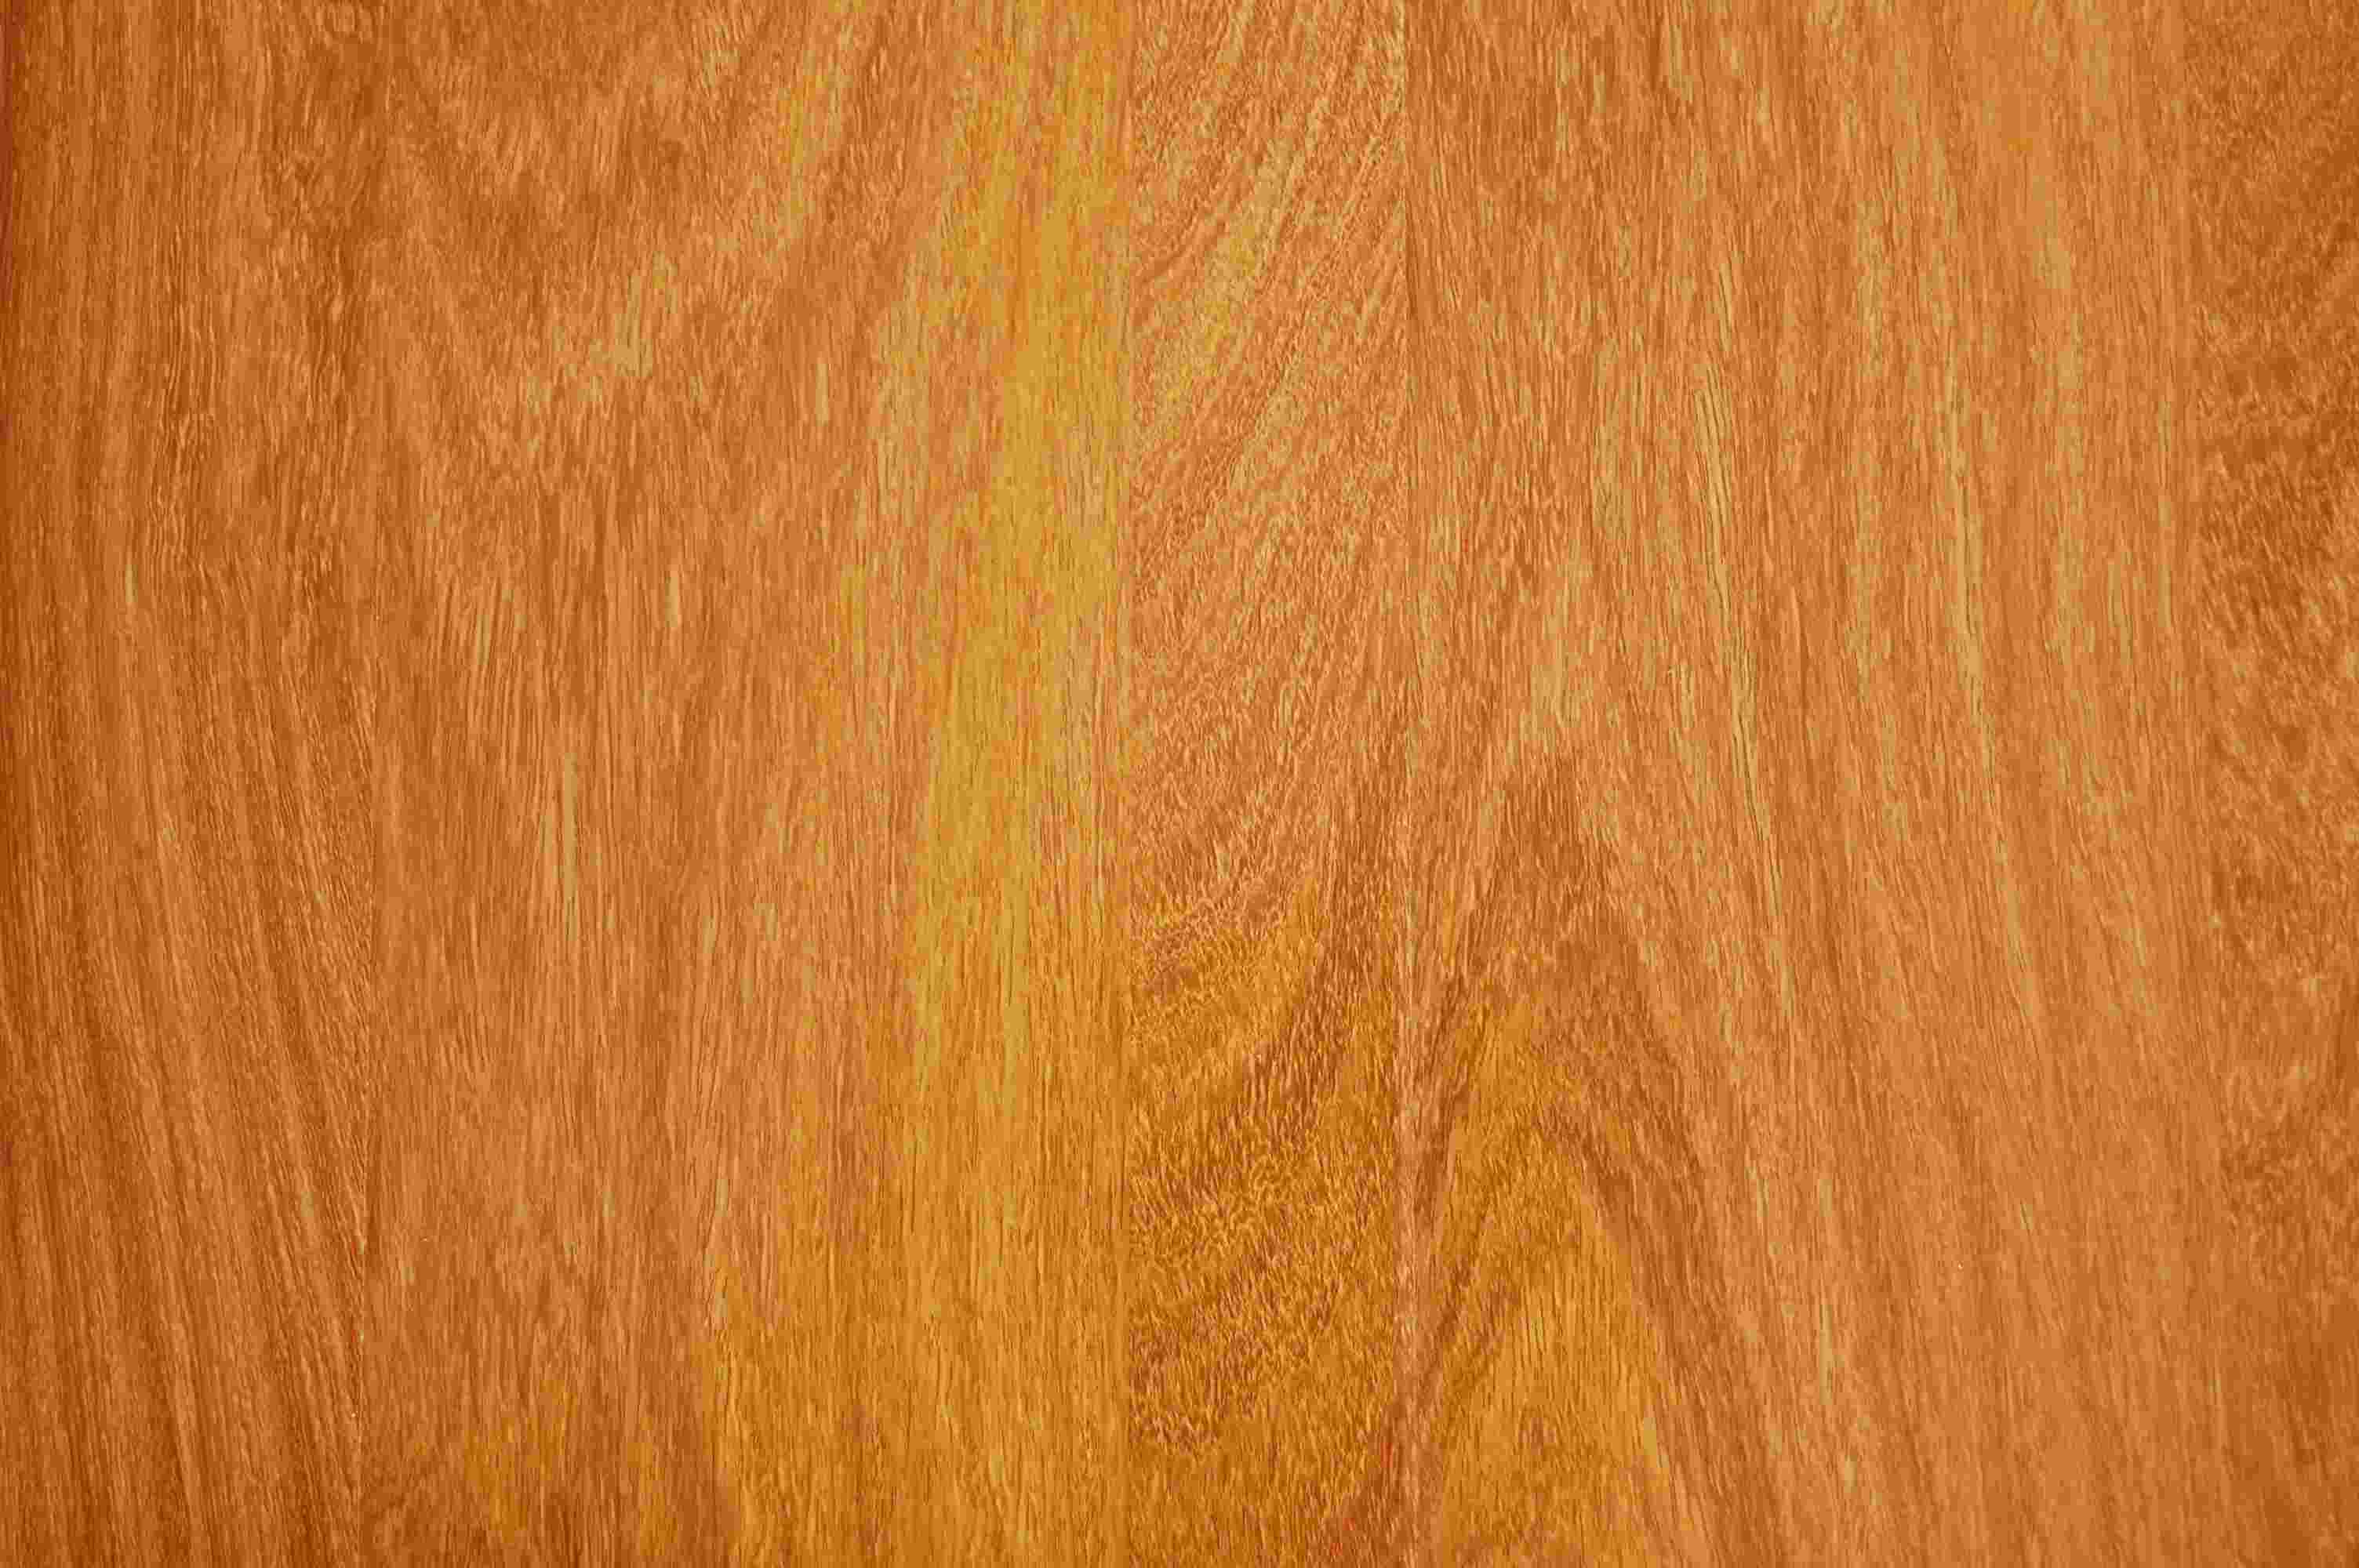 Engineered hardwood vs laminate wood flooring wood floors for Laminate tiles